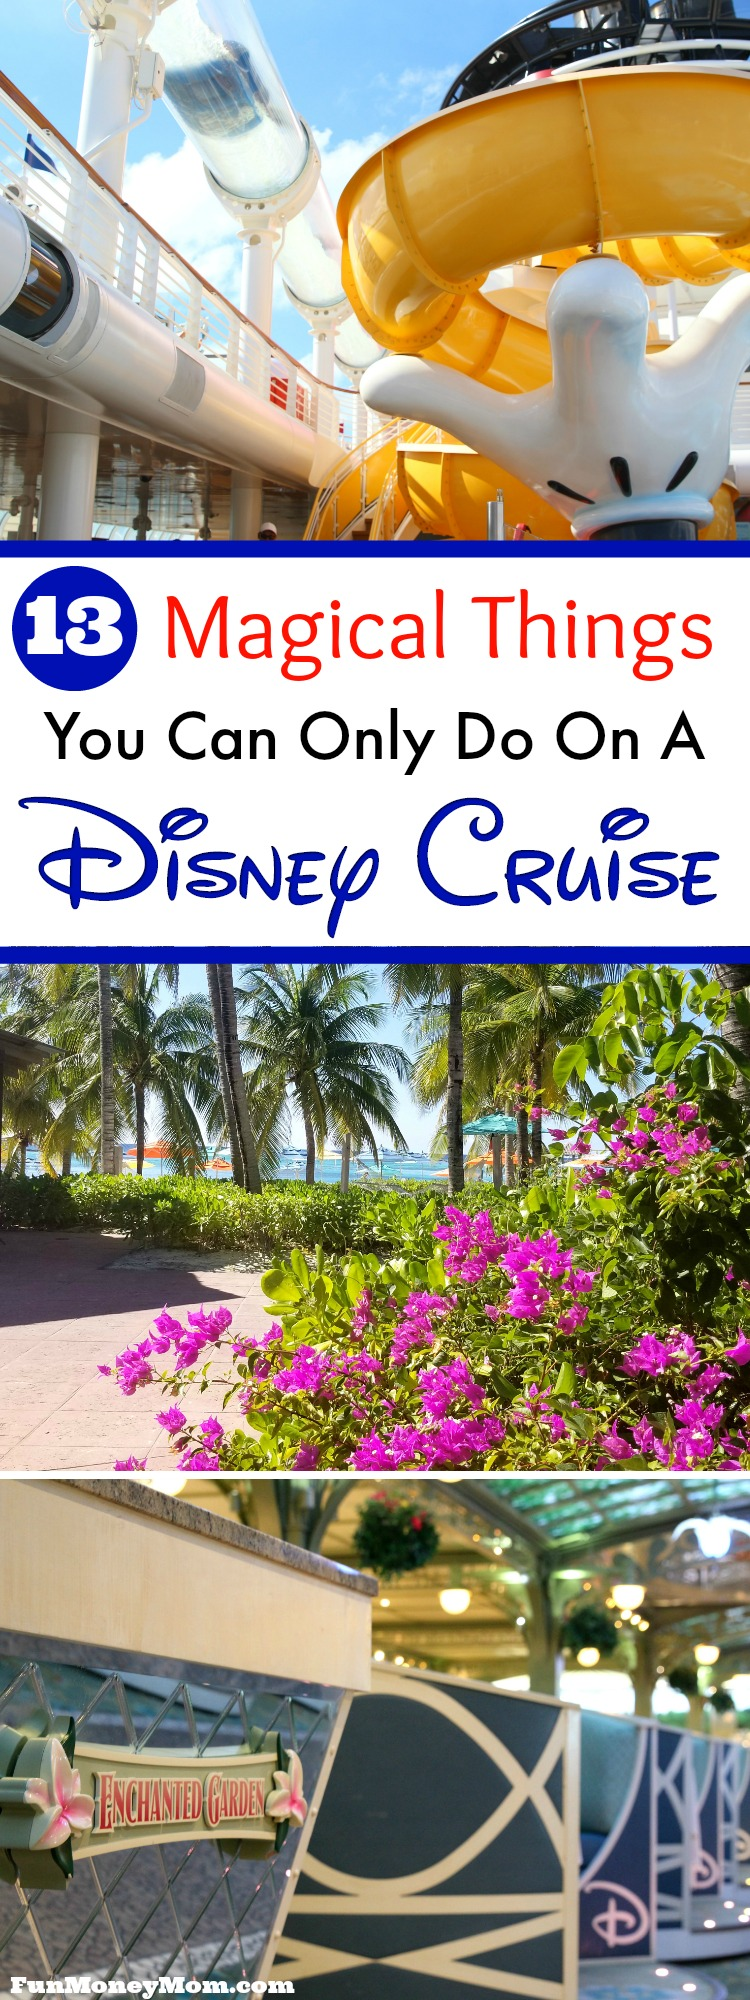 Thinking about a cruise vacation? Disney cruise lines goes above and beyond to be sure you have a magical vacation! Find out what you'll get on a Disney cruise that you won't get anyplace else.